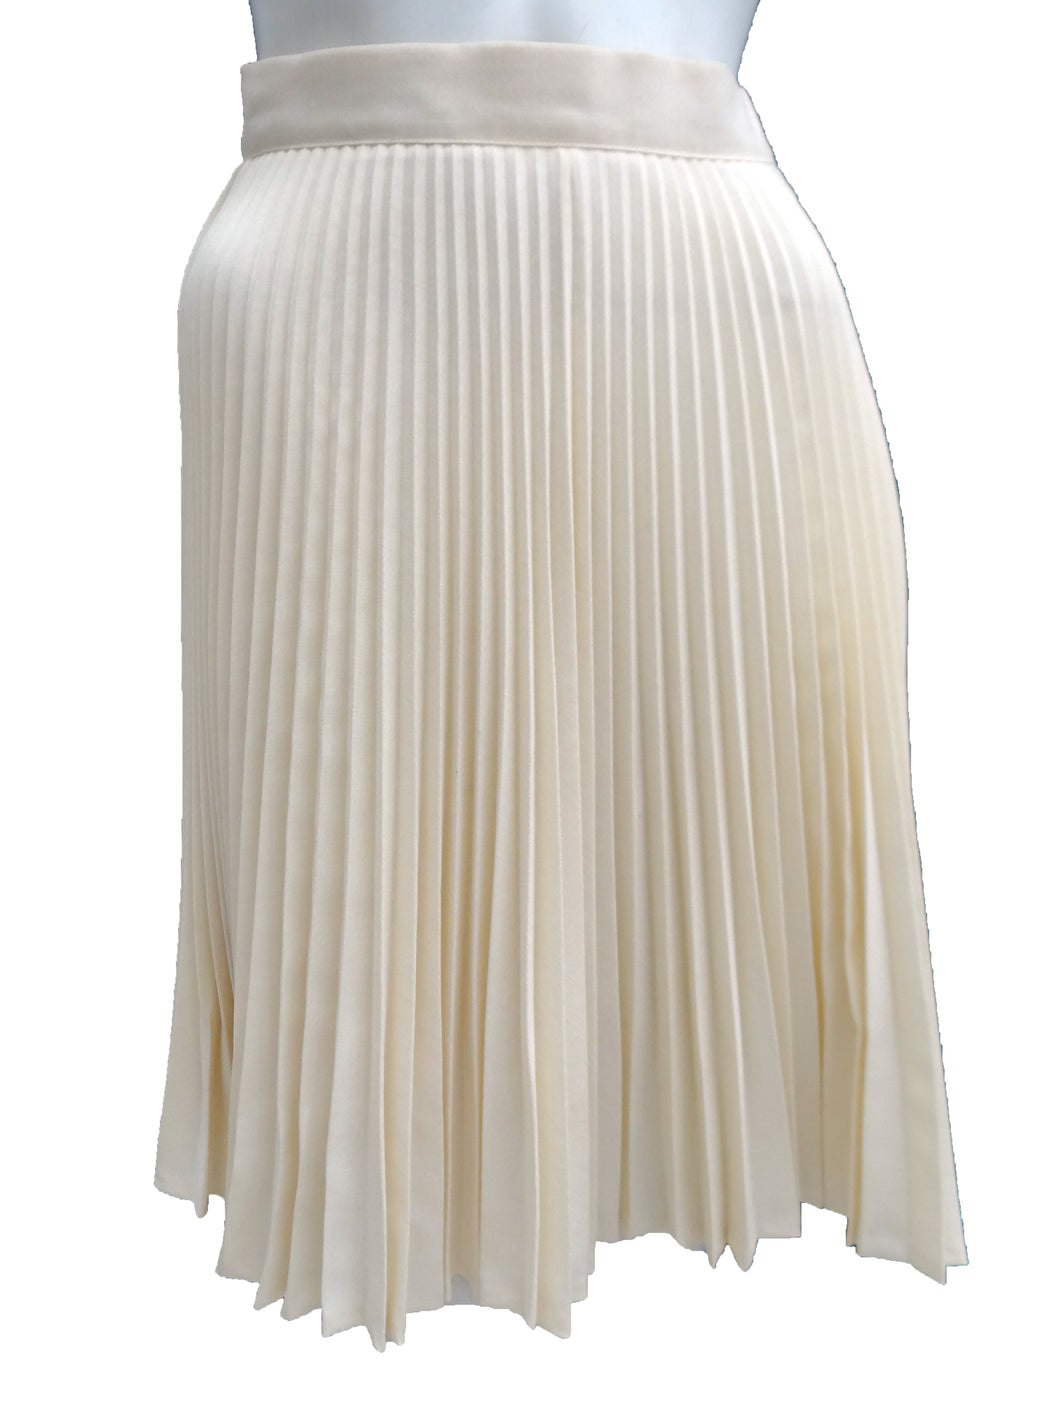 Vintage Mangold Pleated Cream Skirt, 1960s, UK6-8